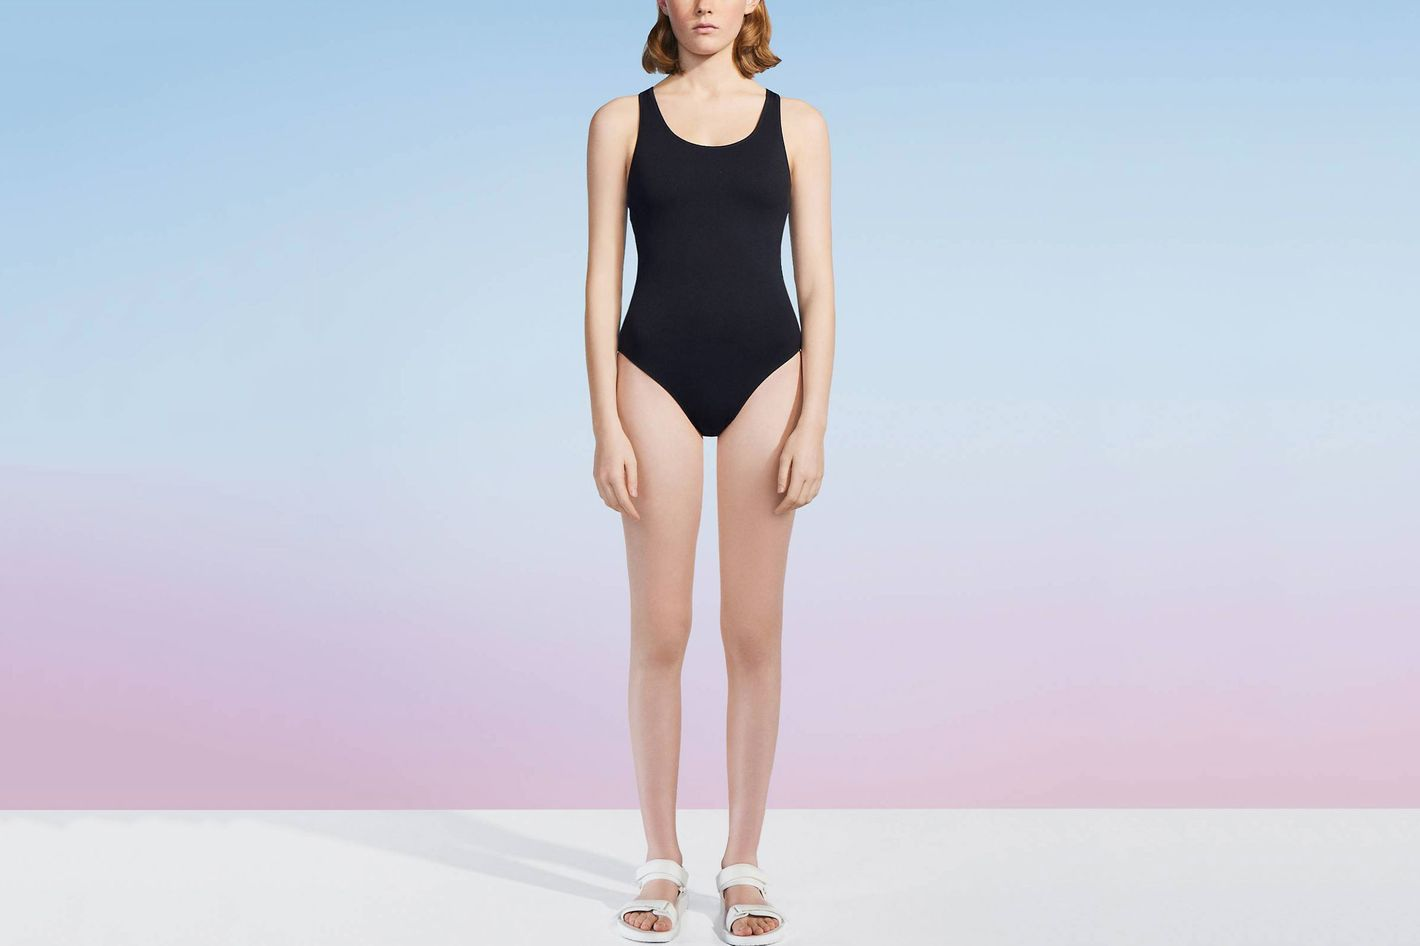 e9b85945f65a5 4 Uniqlo U Bathing Suits Are on Steep Discount Right Now